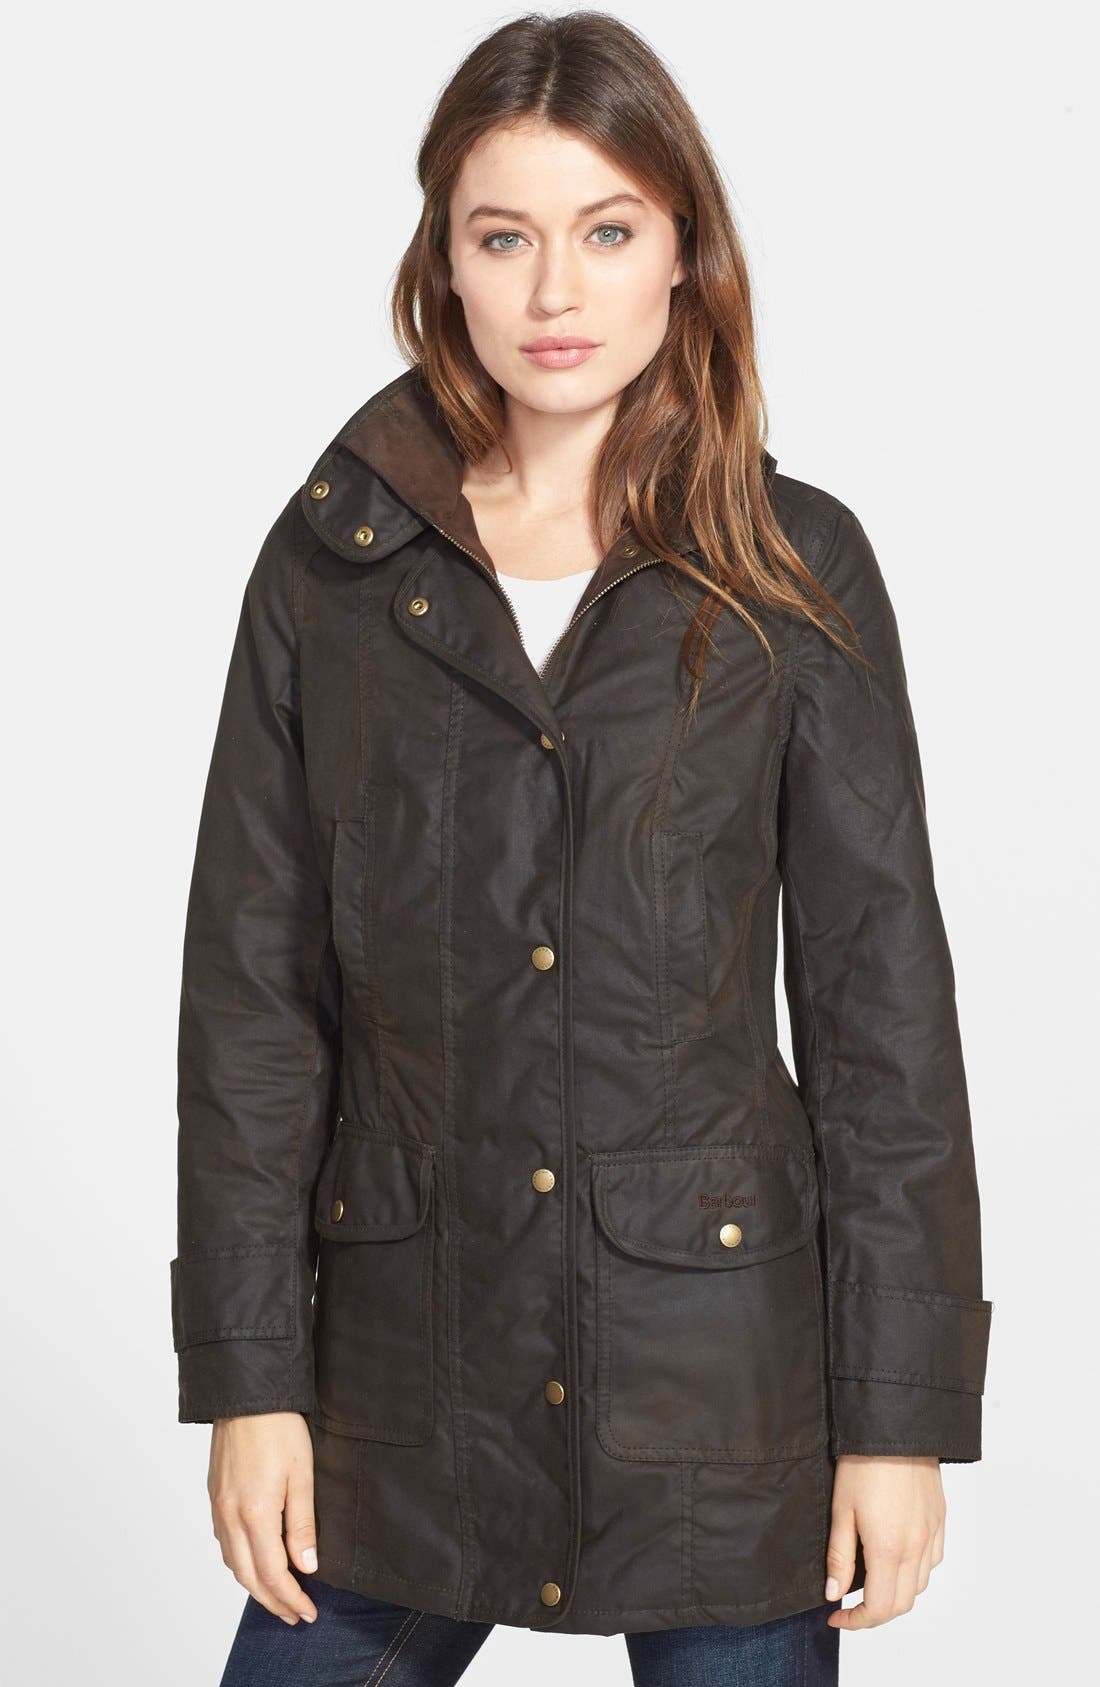 Main Image - Barbour 'Squire' Waterproof Waxed Cotton Jacket